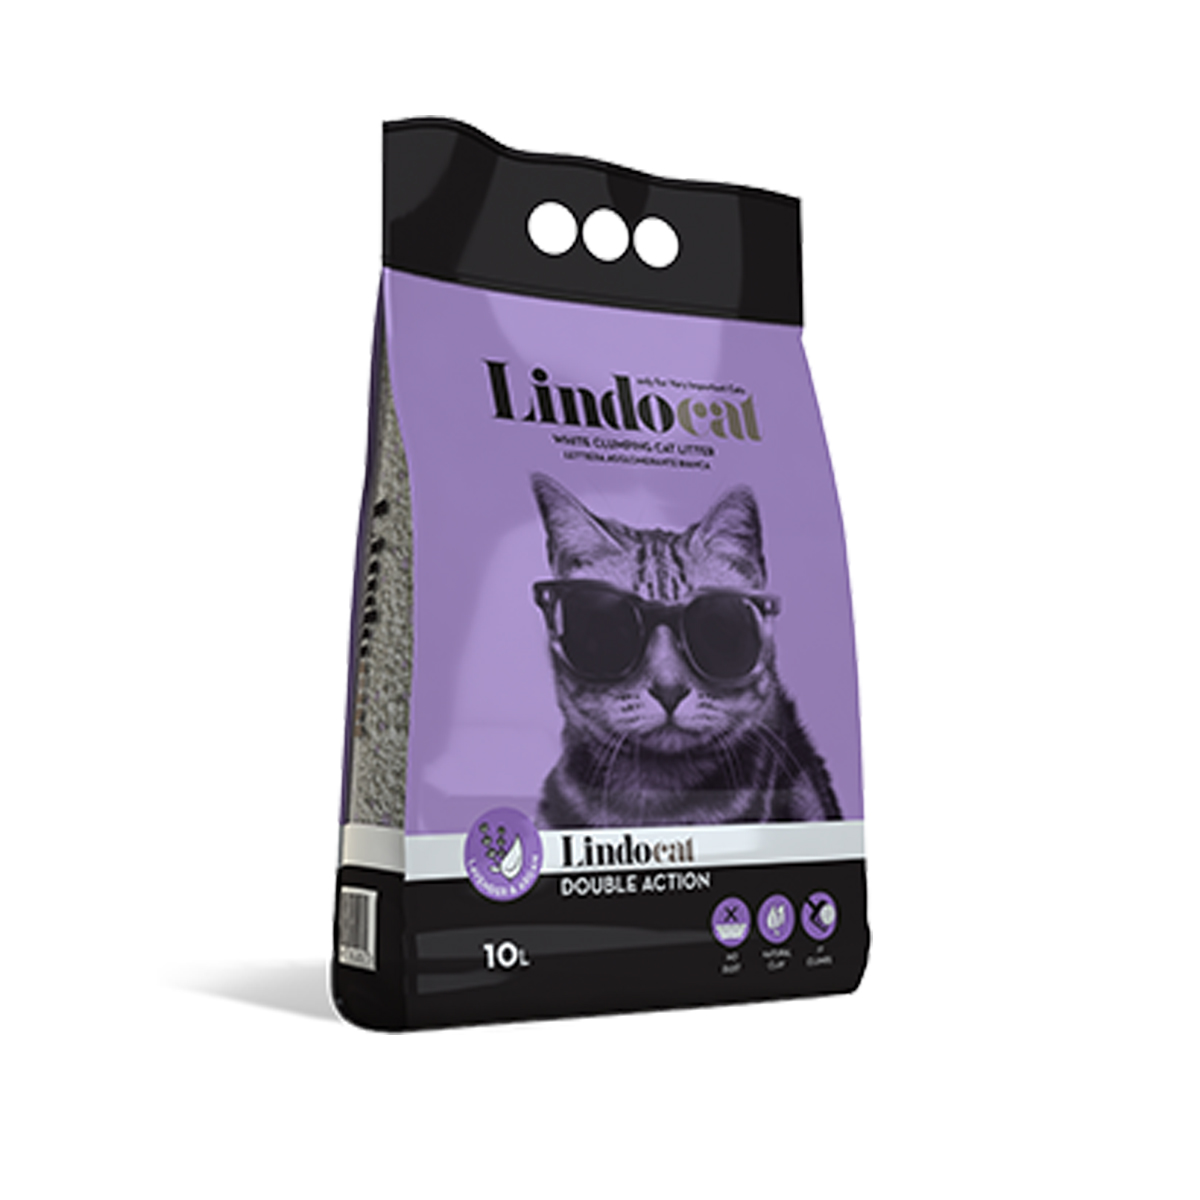 Lindocat Double Action 10 Litri bentonite agglomerante